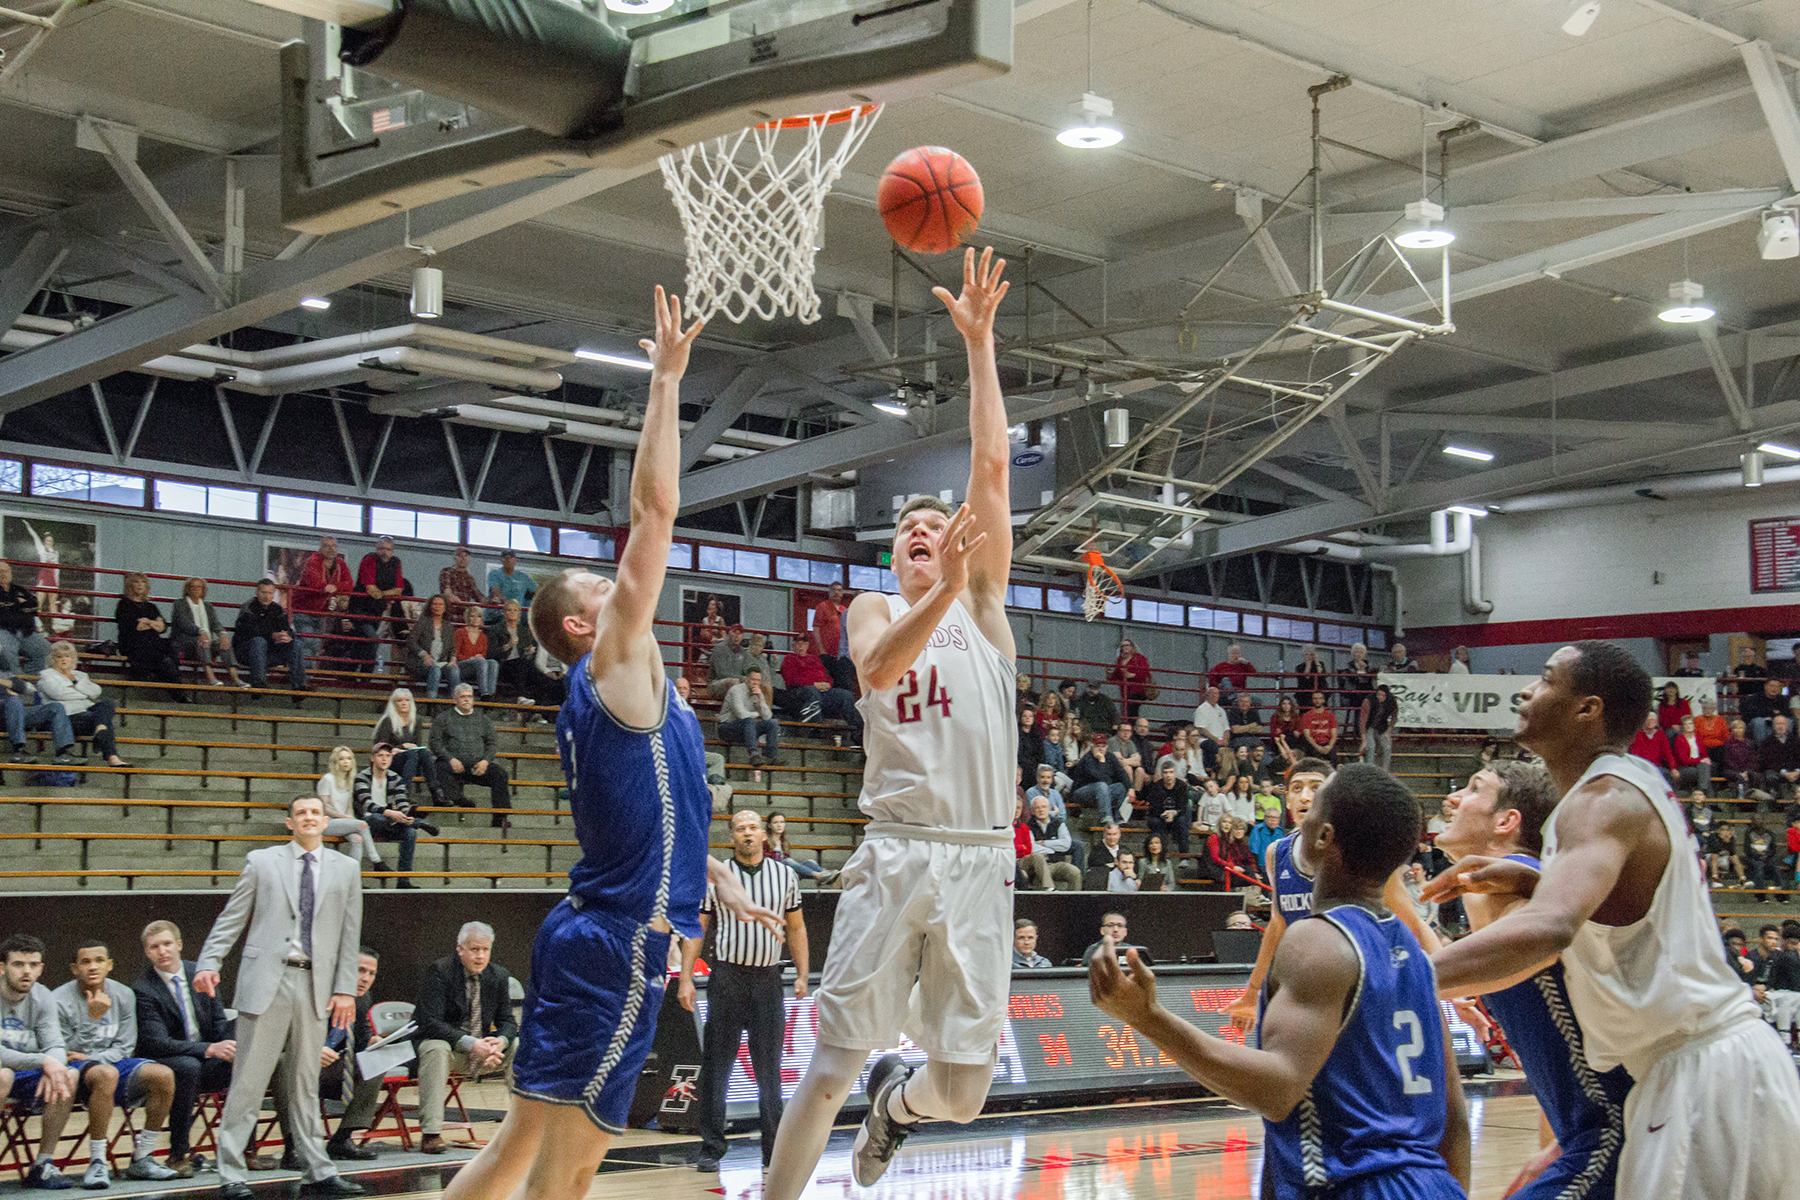 Freshman guard Tate Hall recorded 15 points in the victory over Rockhurst University on Feb. 11. Hall was also been named the Great Lakes Valley Conference Freshman of the Year, prior to the end of the season. Photo by Cassie Reverman